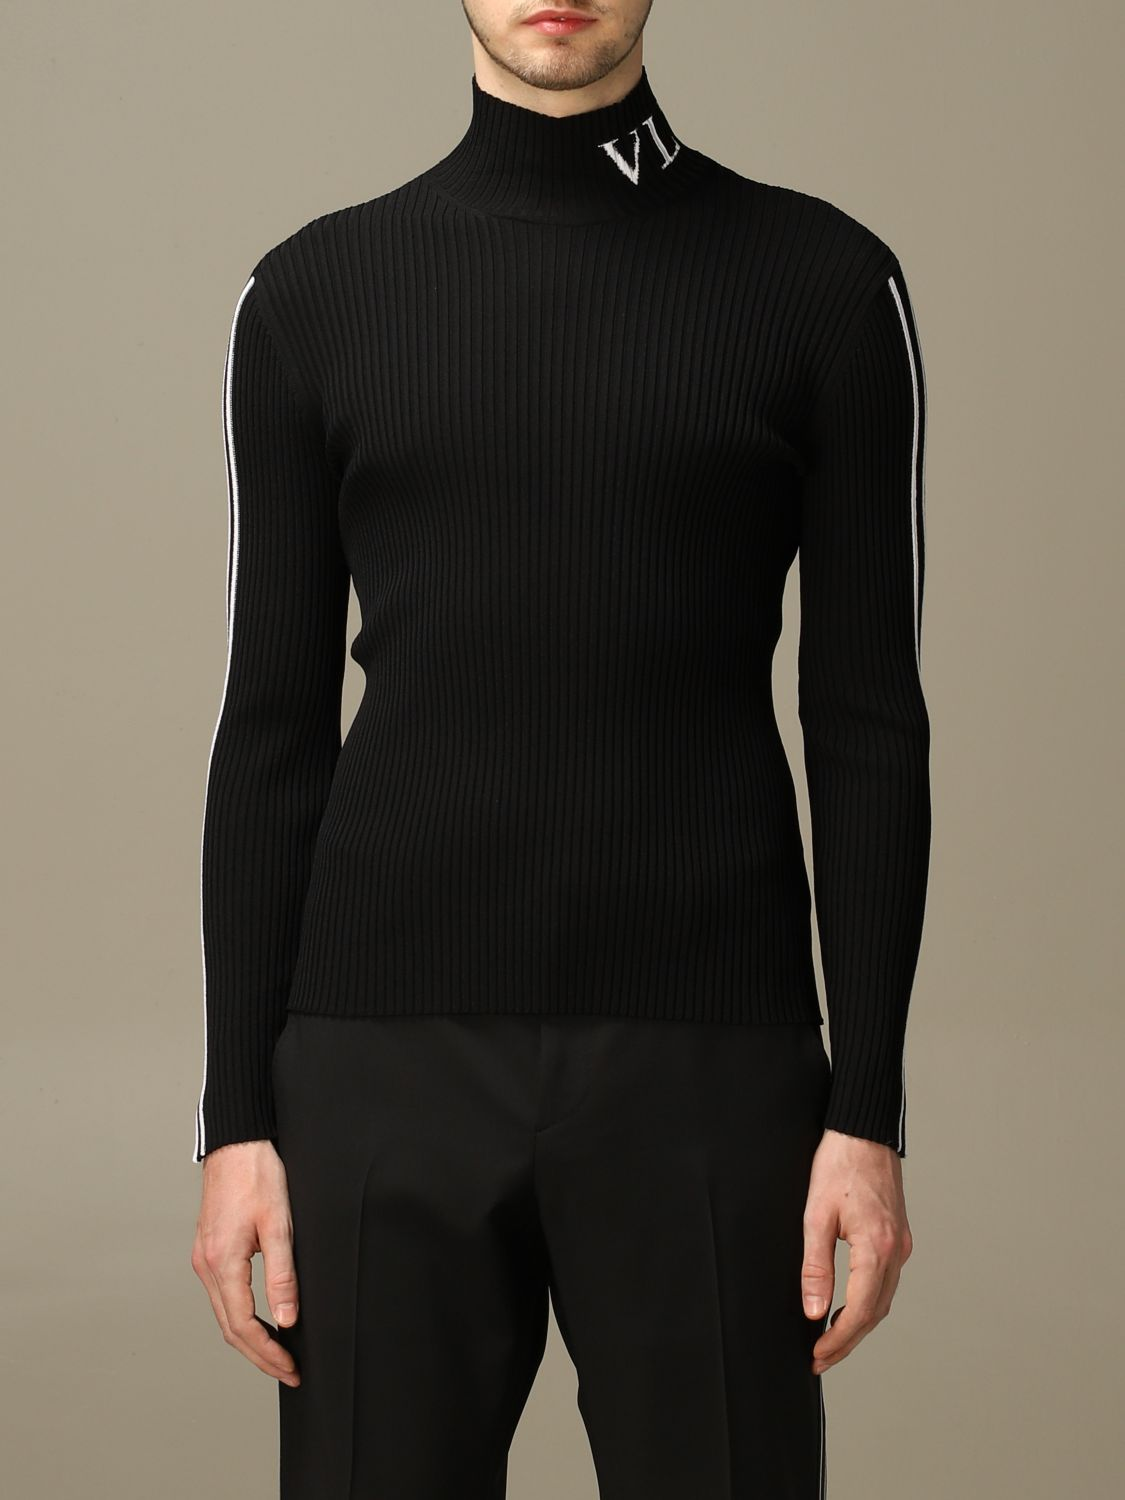 Jumper Valentino: Jumper men Valentino black 1